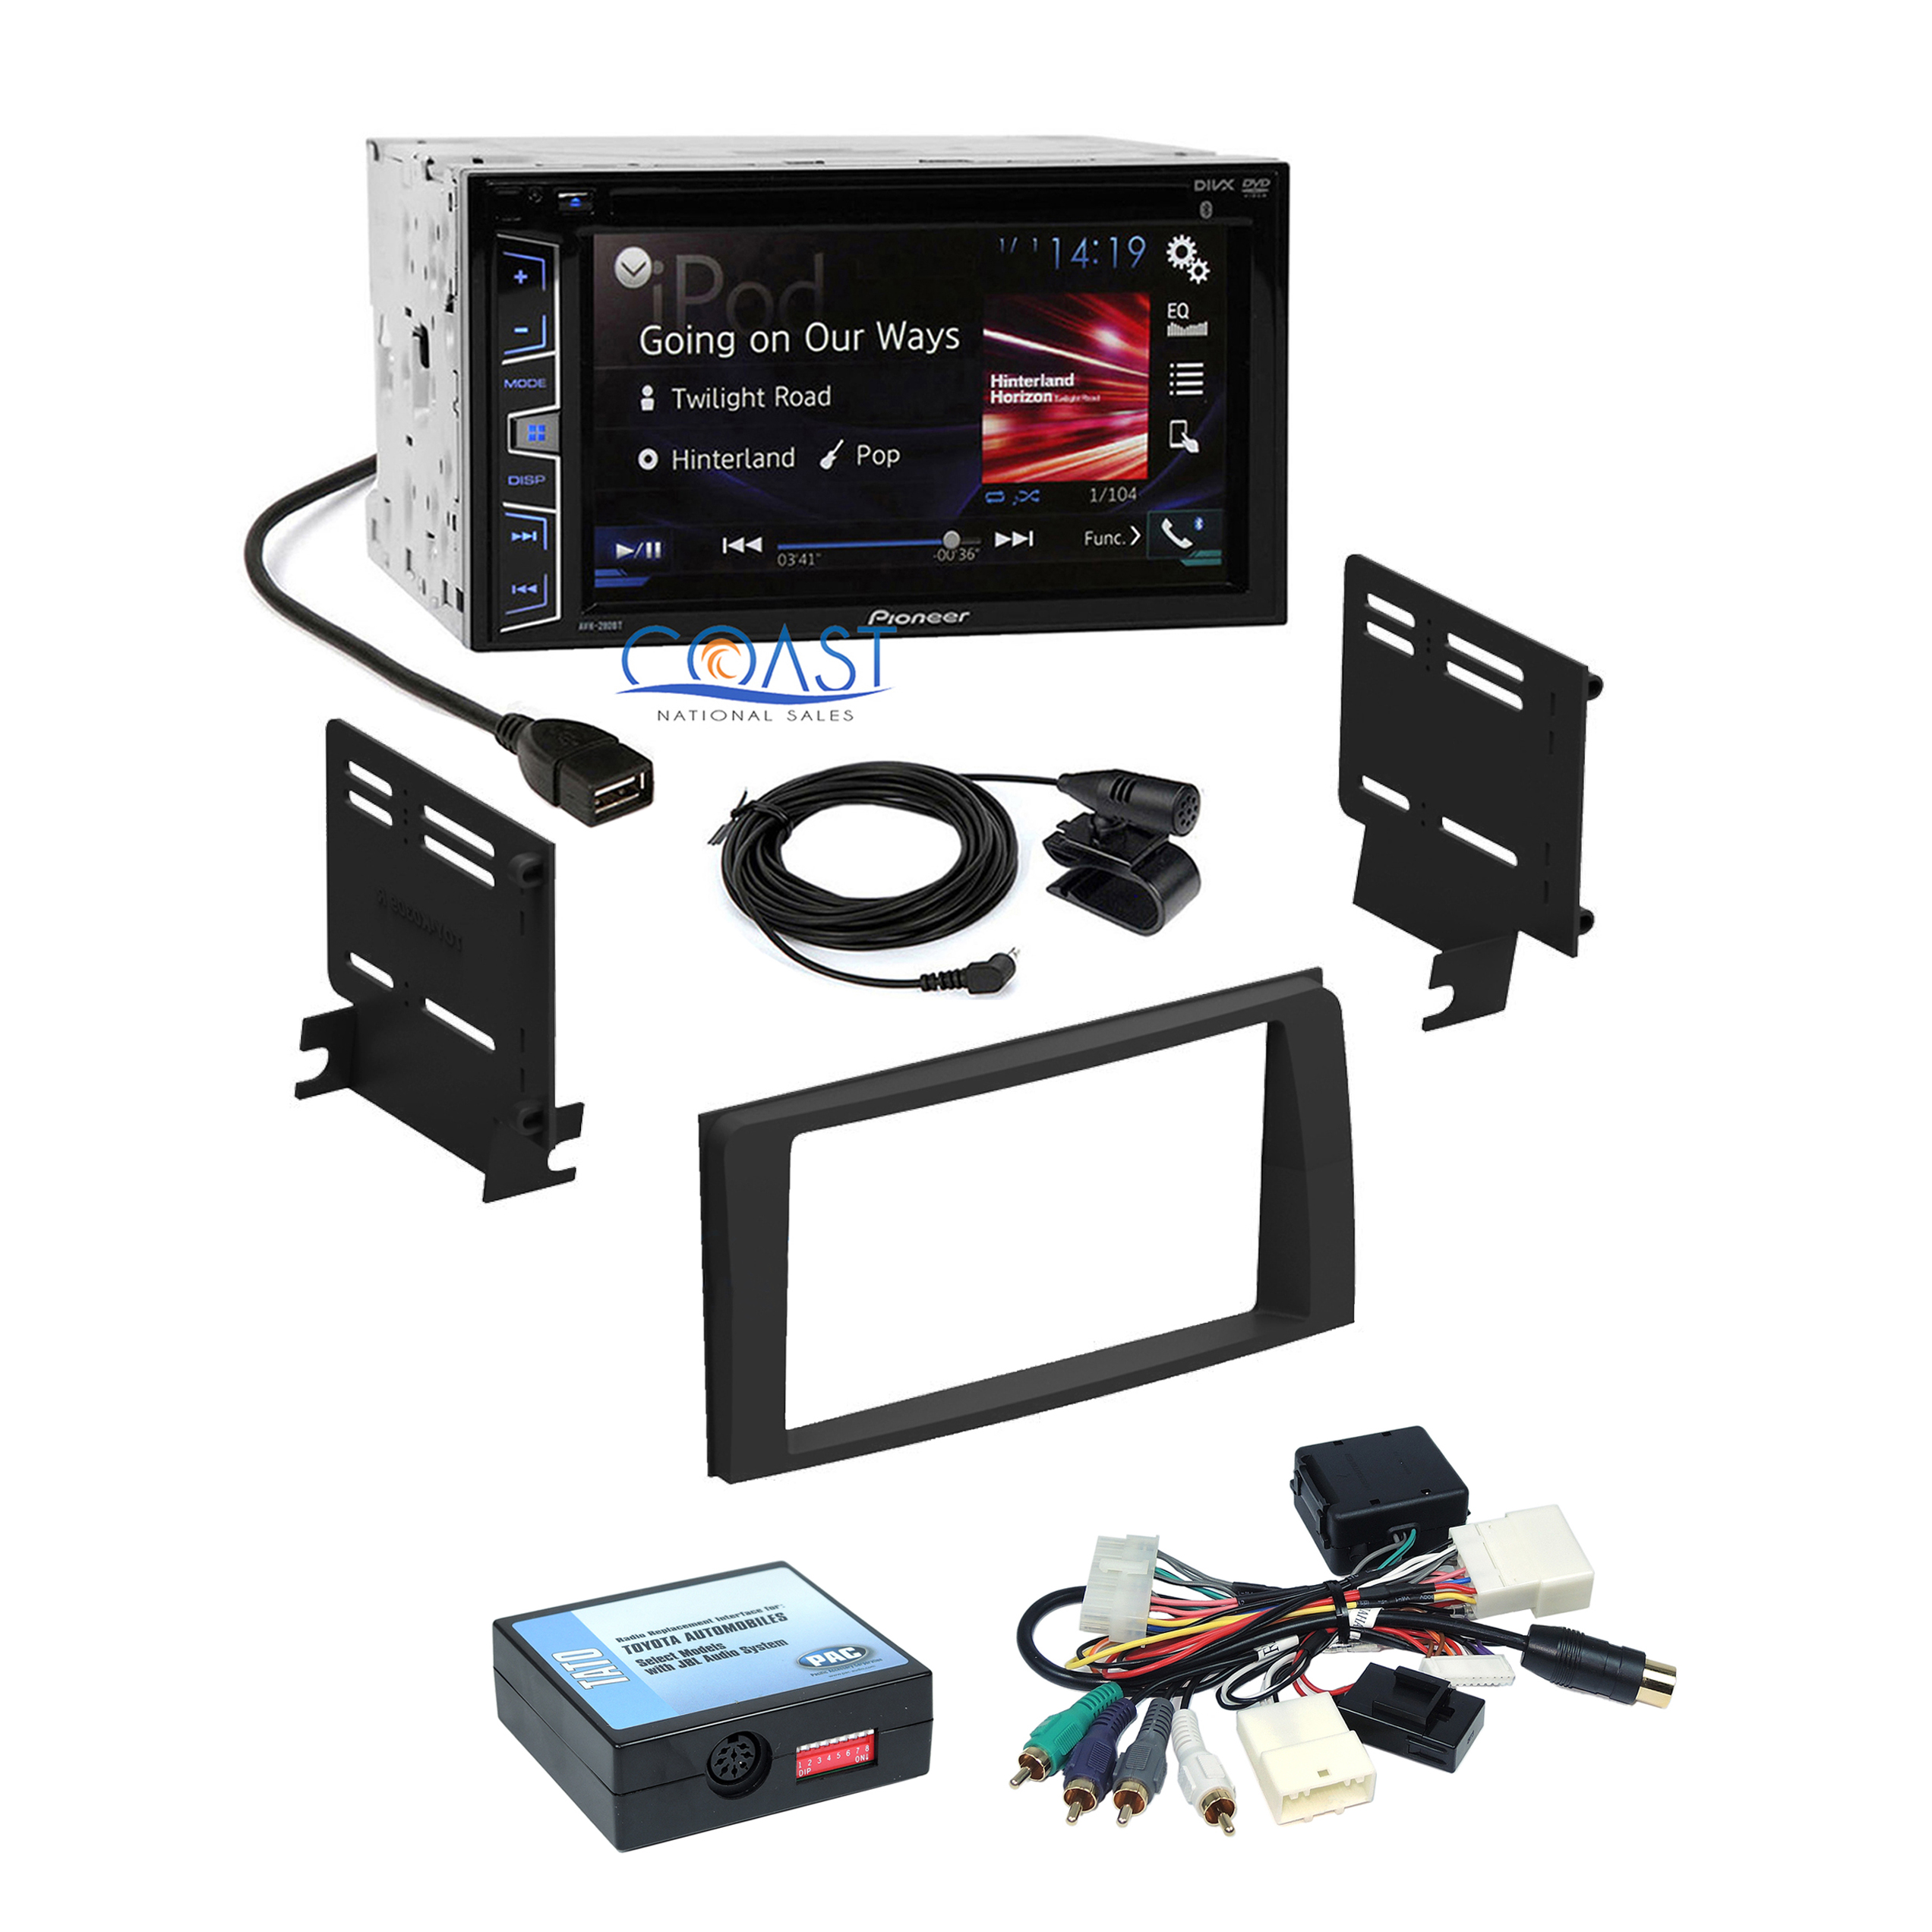 Pioneer Auh 190 Dvd Wiring Diagram 34 Images Avh P6400cd Toy K0309dd Tato 290bt 190dvd Wire 291bt